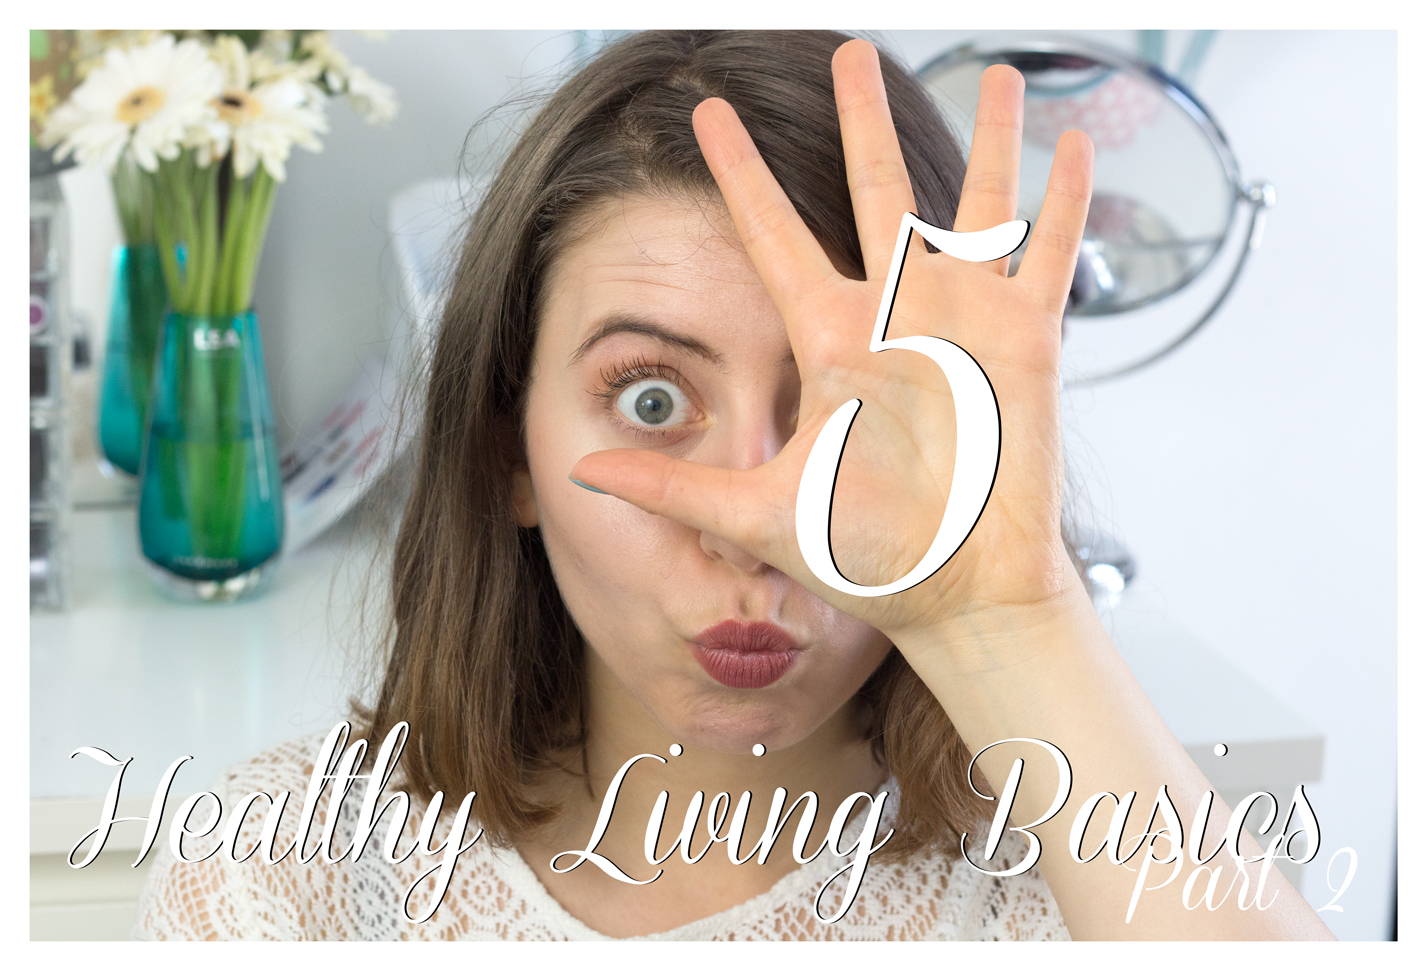 THE VIDEO: HEALTHY LIVING BASICS #2